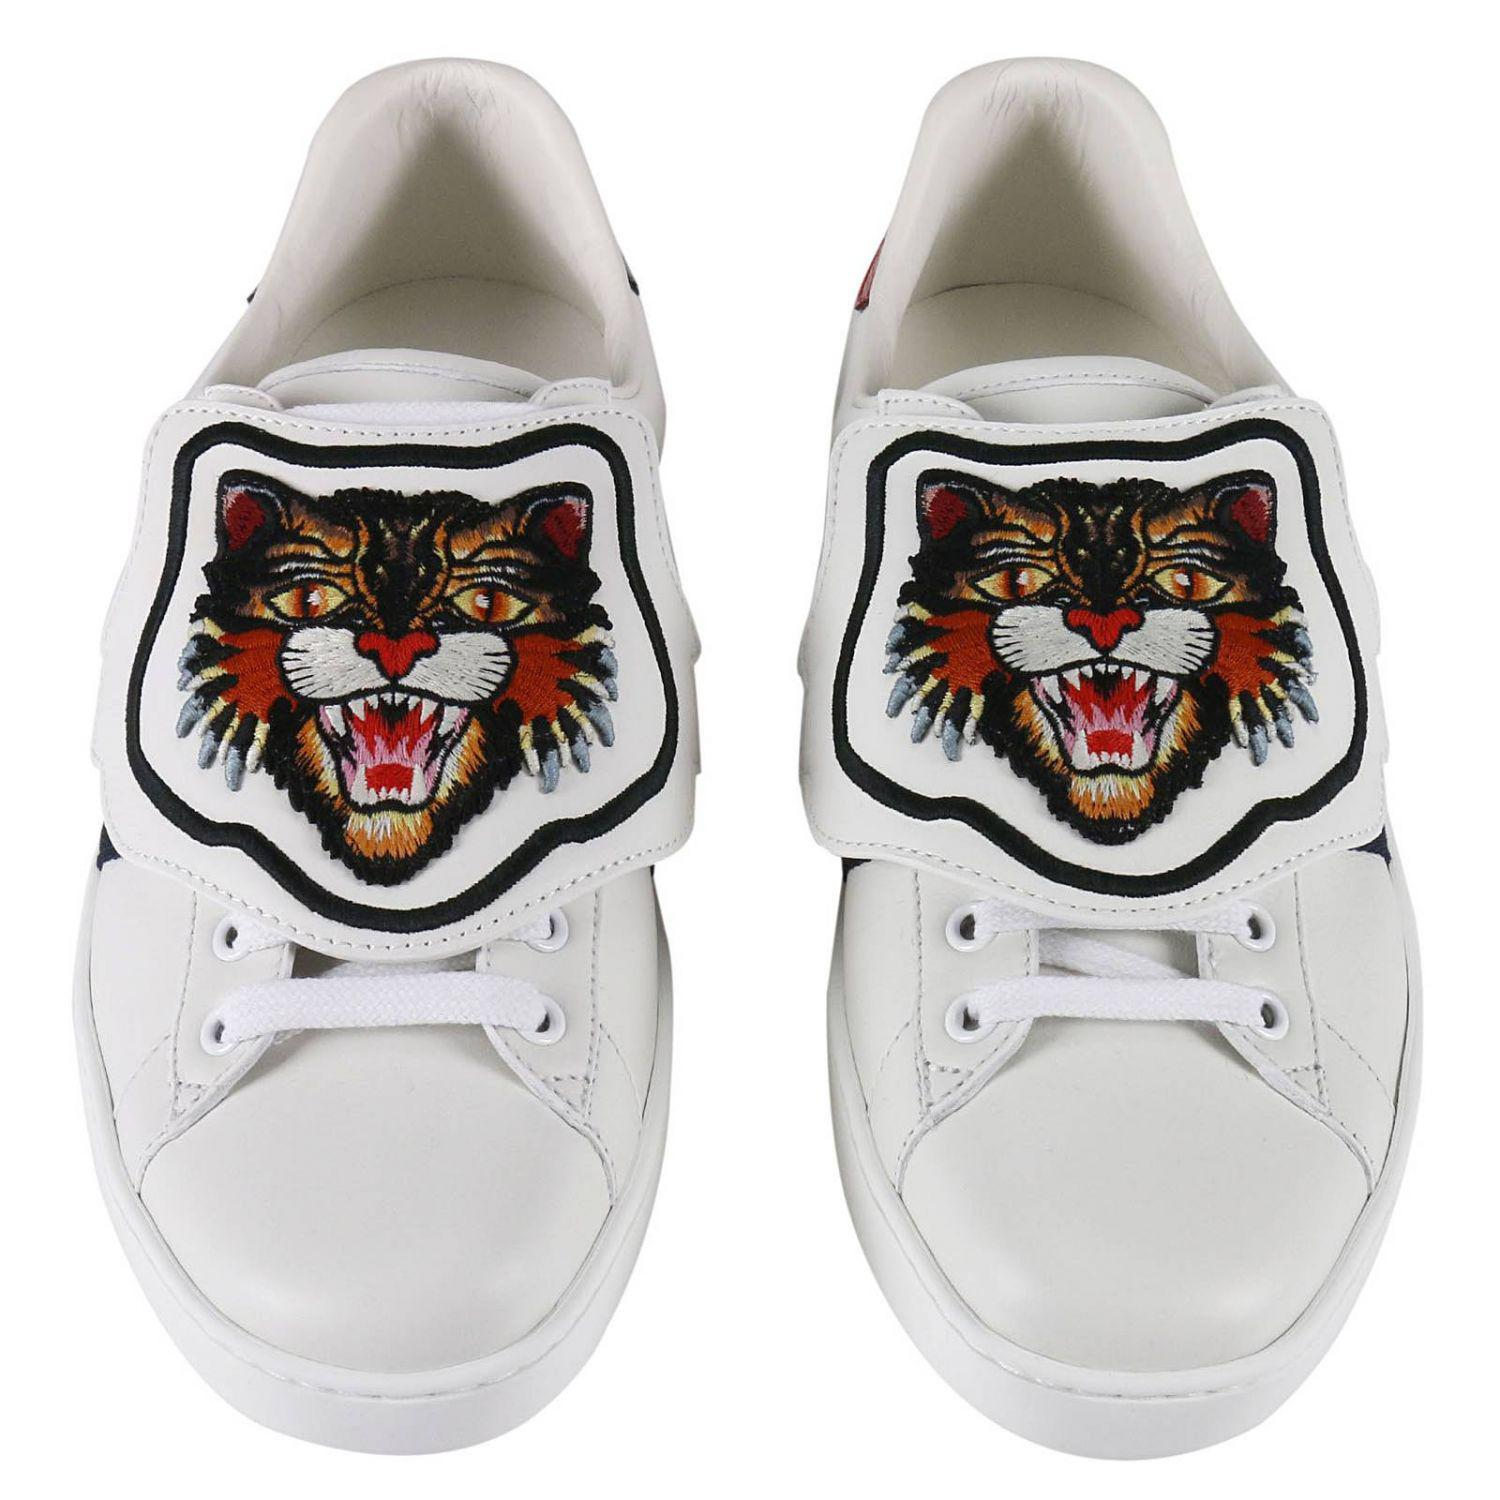 8fed140be Gucci Ace Sneakers With Embroidered Angry Cat Removable Patches And ...